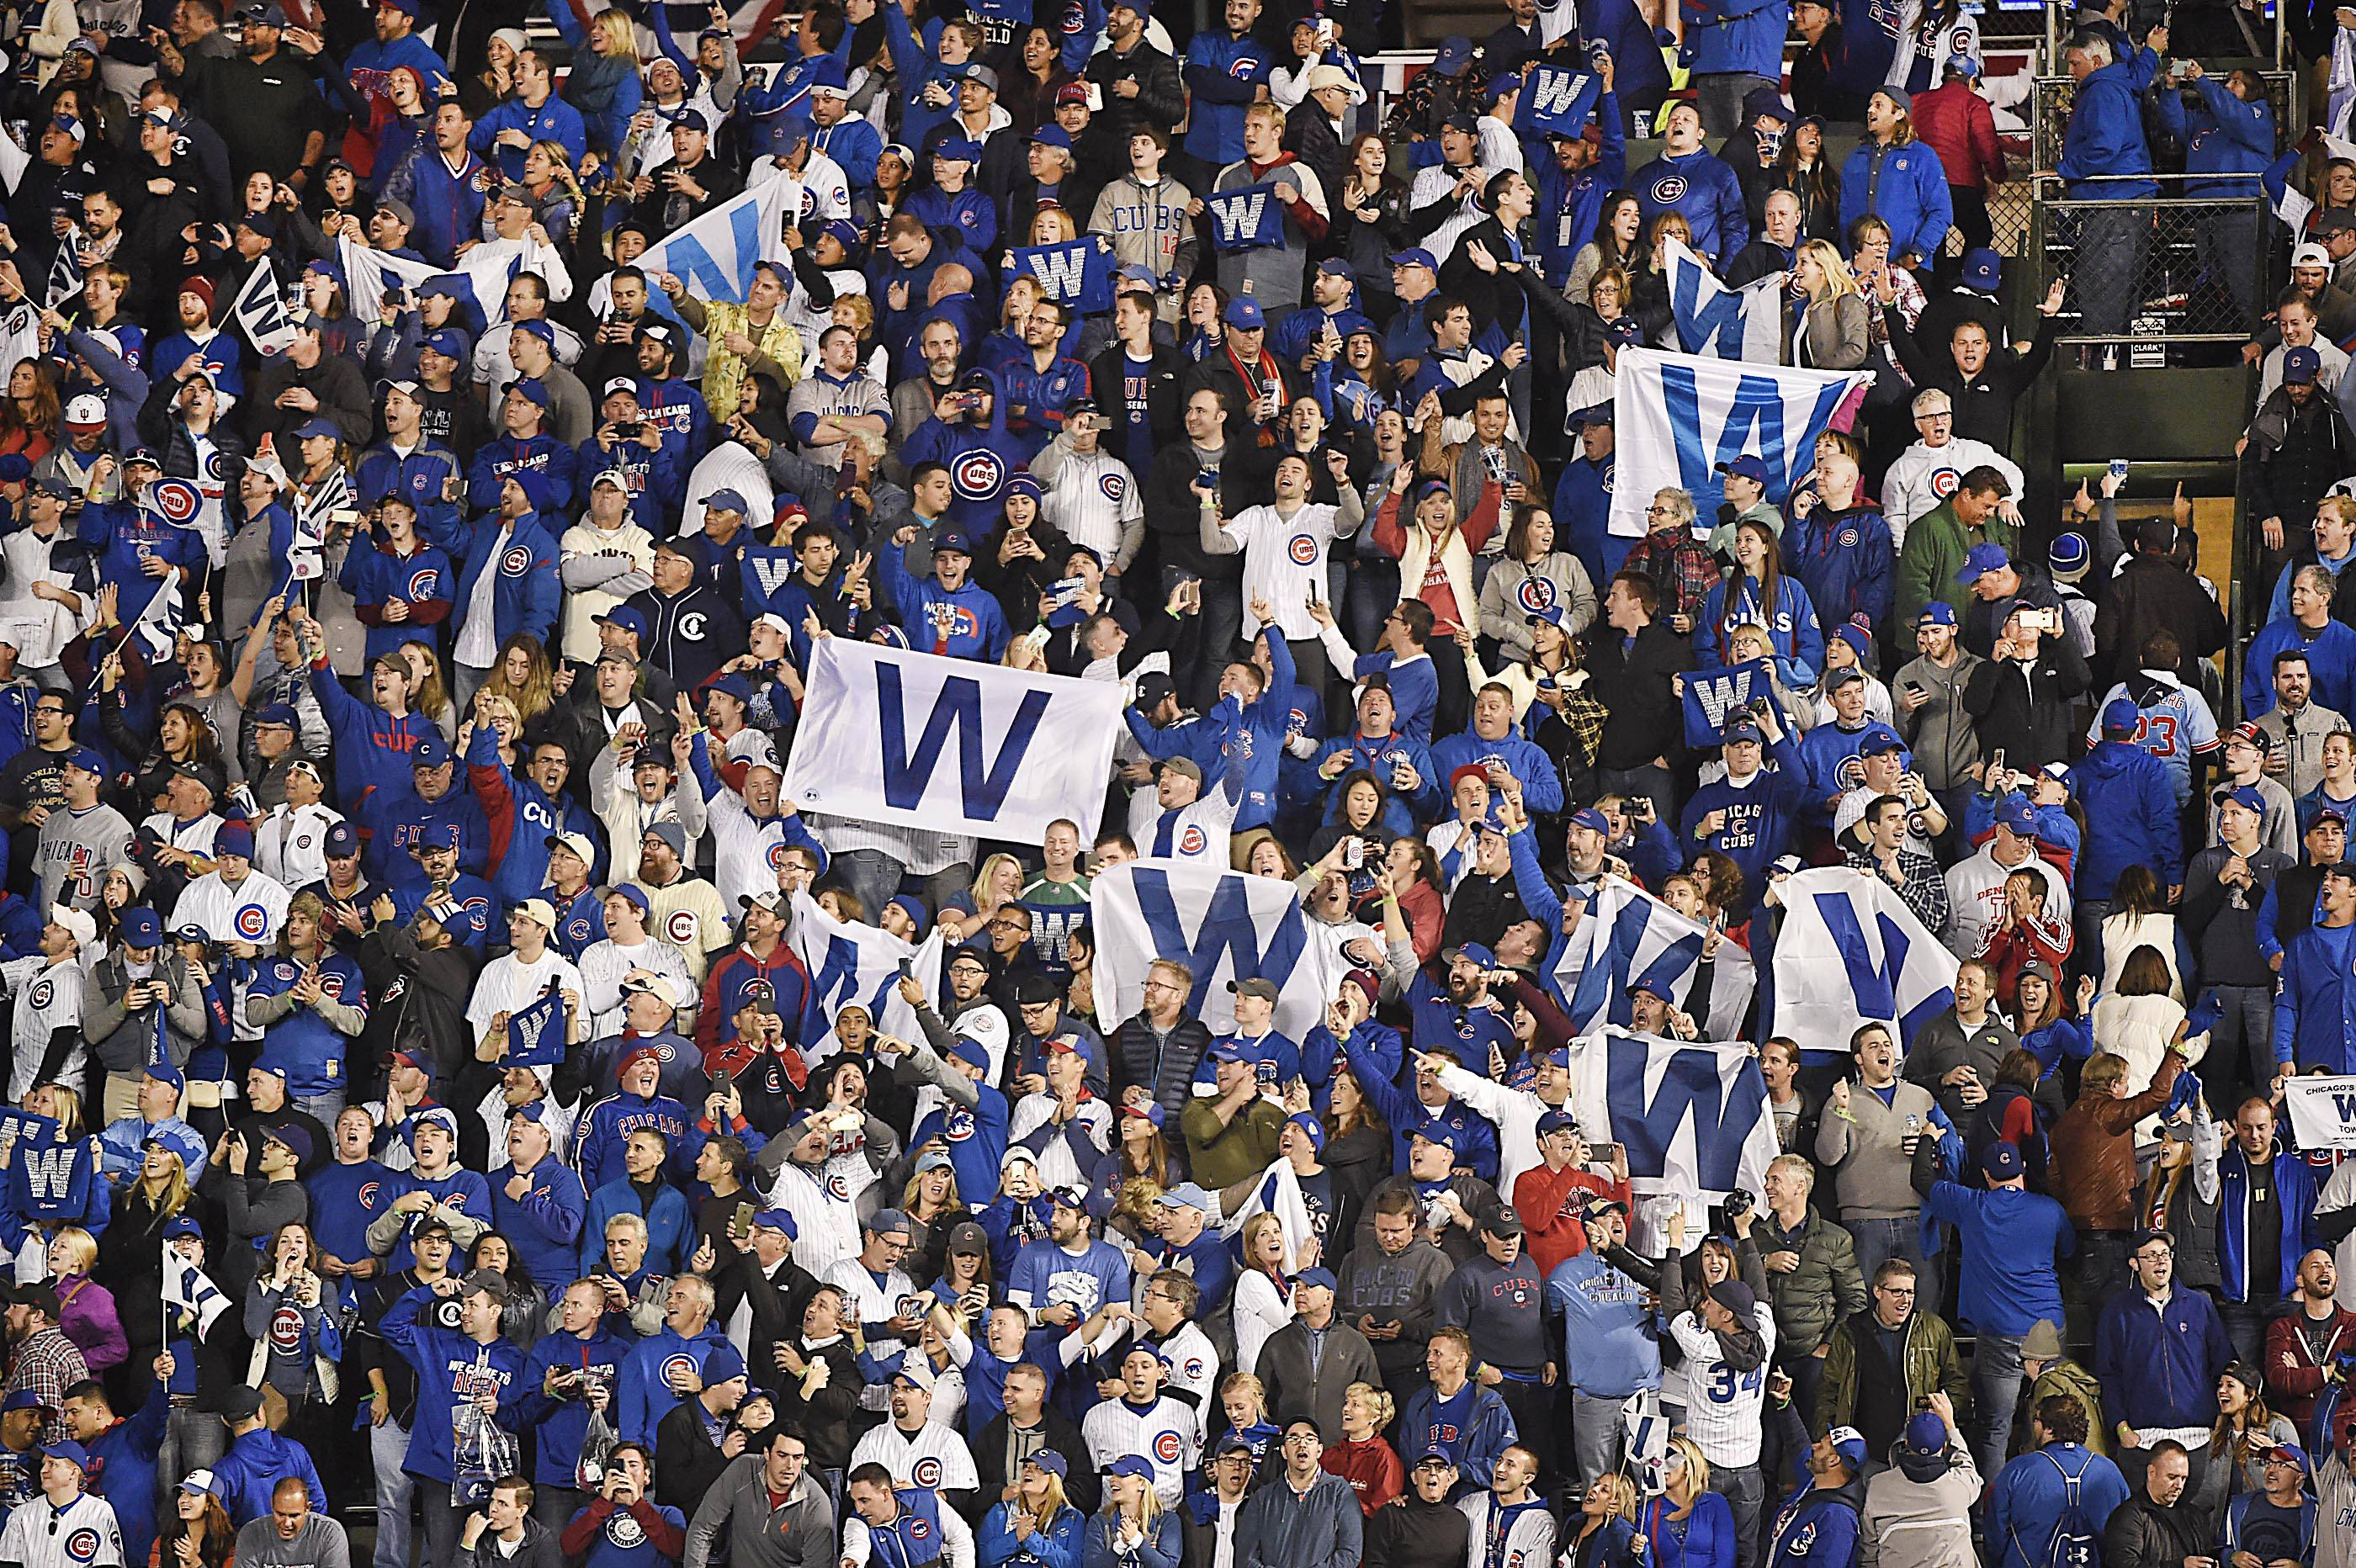 Cubs ticket lottery now open for single postseason games